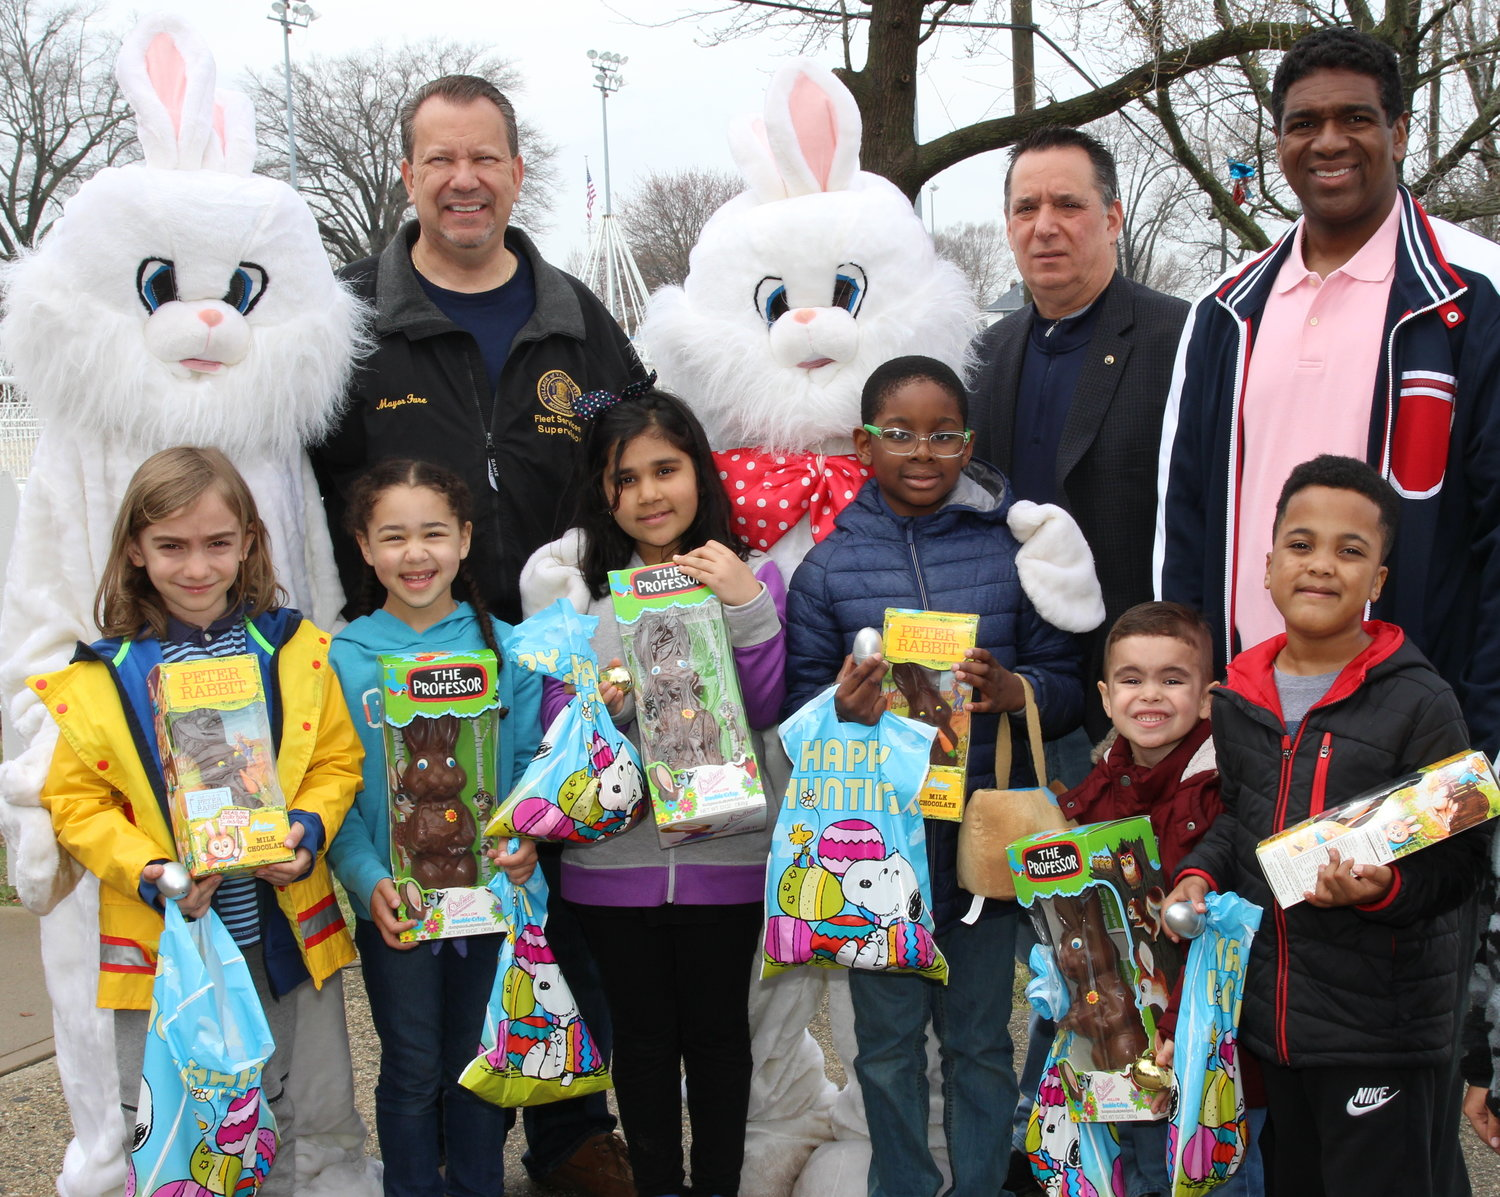 Mayor Ed Fare, Trustee John Tufarelli and Deputy Mayor Sean Wright, along with Mr. and Mrs. Rabbit, presented chocolate bunnies to Leyla Ozelge, Mary Ann Khan, Emmauel Velasquez, Nicholas Kaminsky, Logan Dickens and Jermiah Belizaire for finding gold and silver eggs.